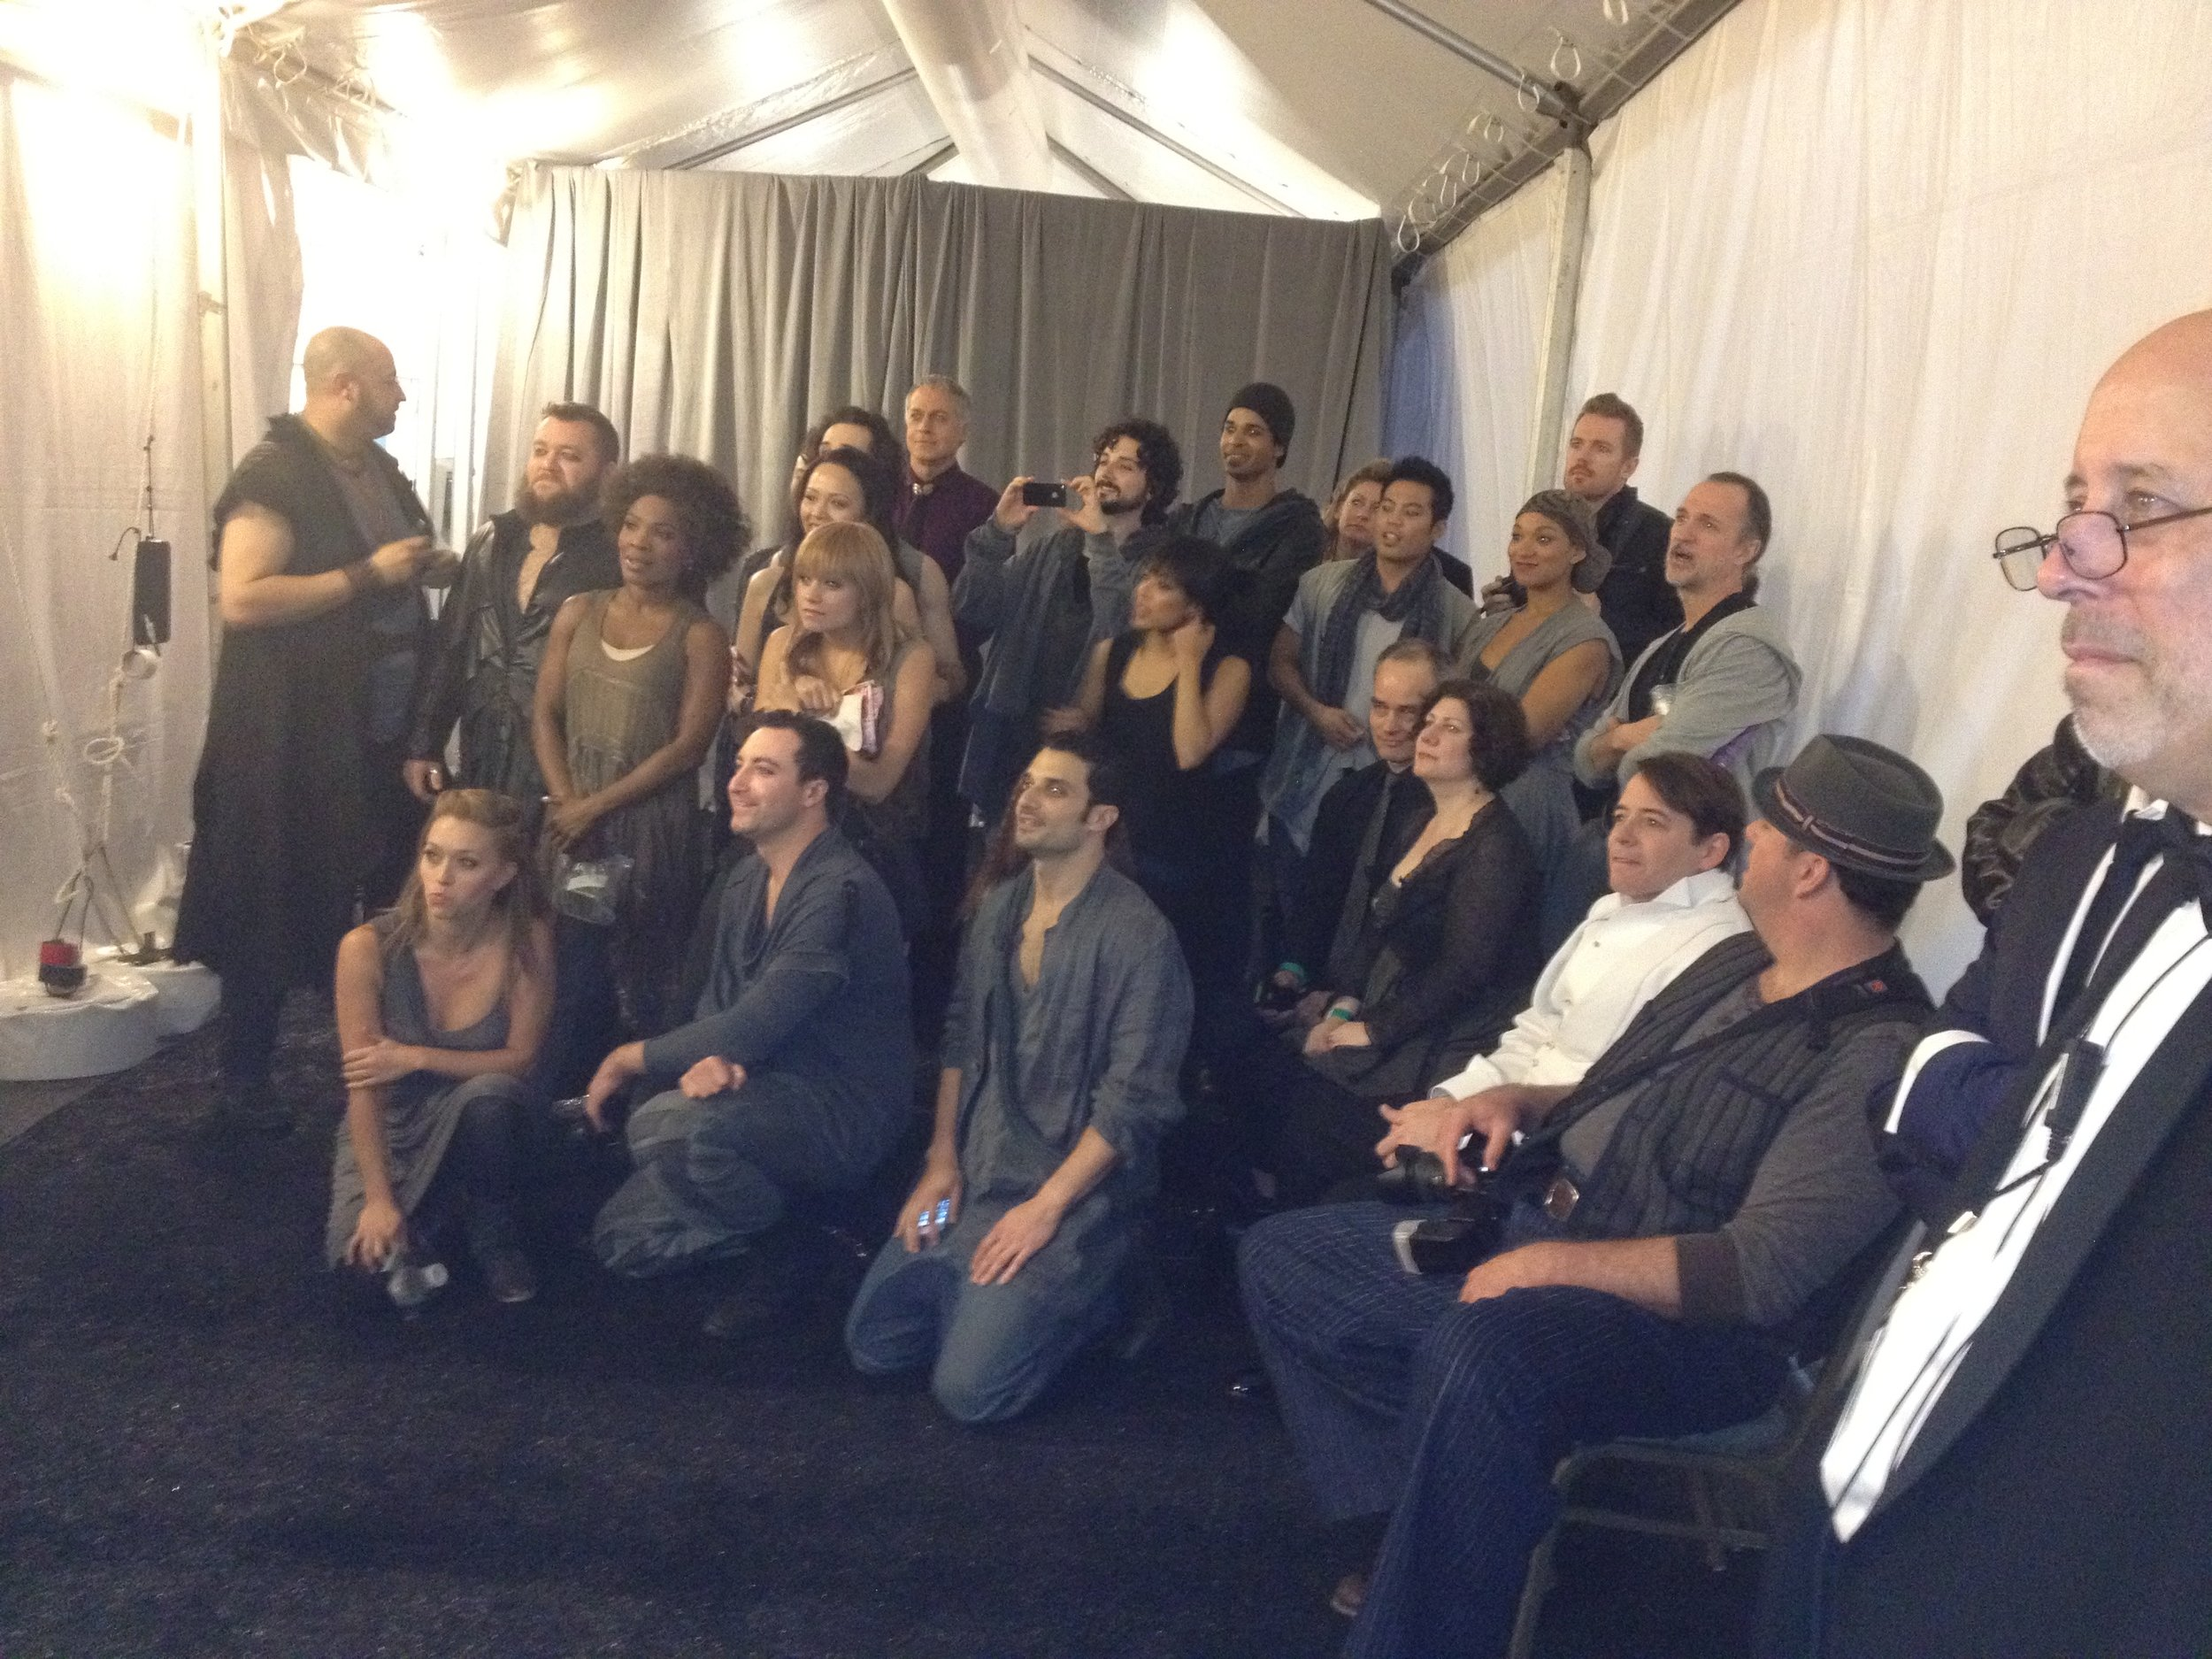 JCS cast (and Matthew Broderick) backstage at the Tonys